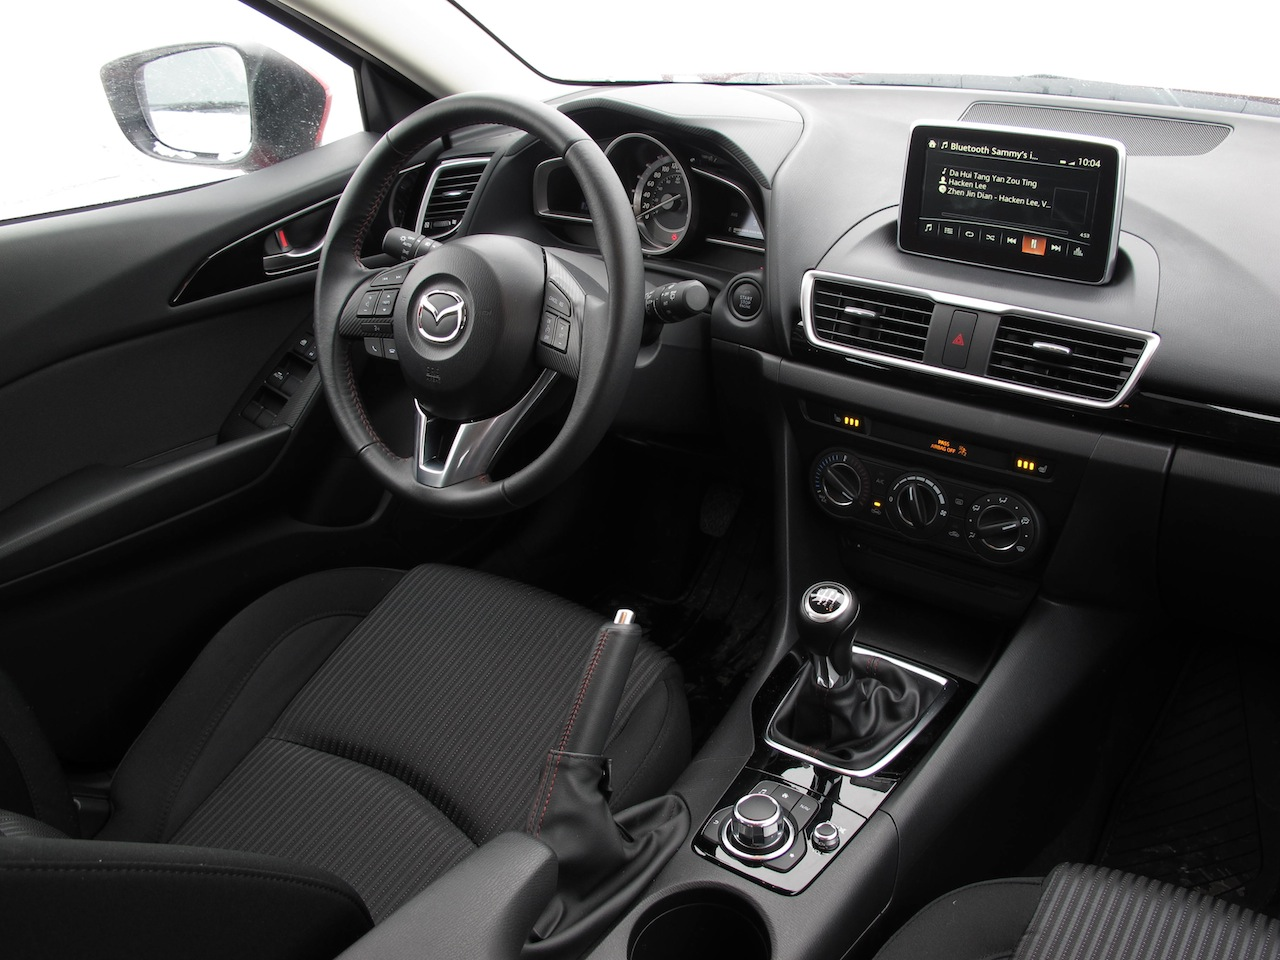 2014 mazda3 sport gs photo gallery - cars, photos, test drives